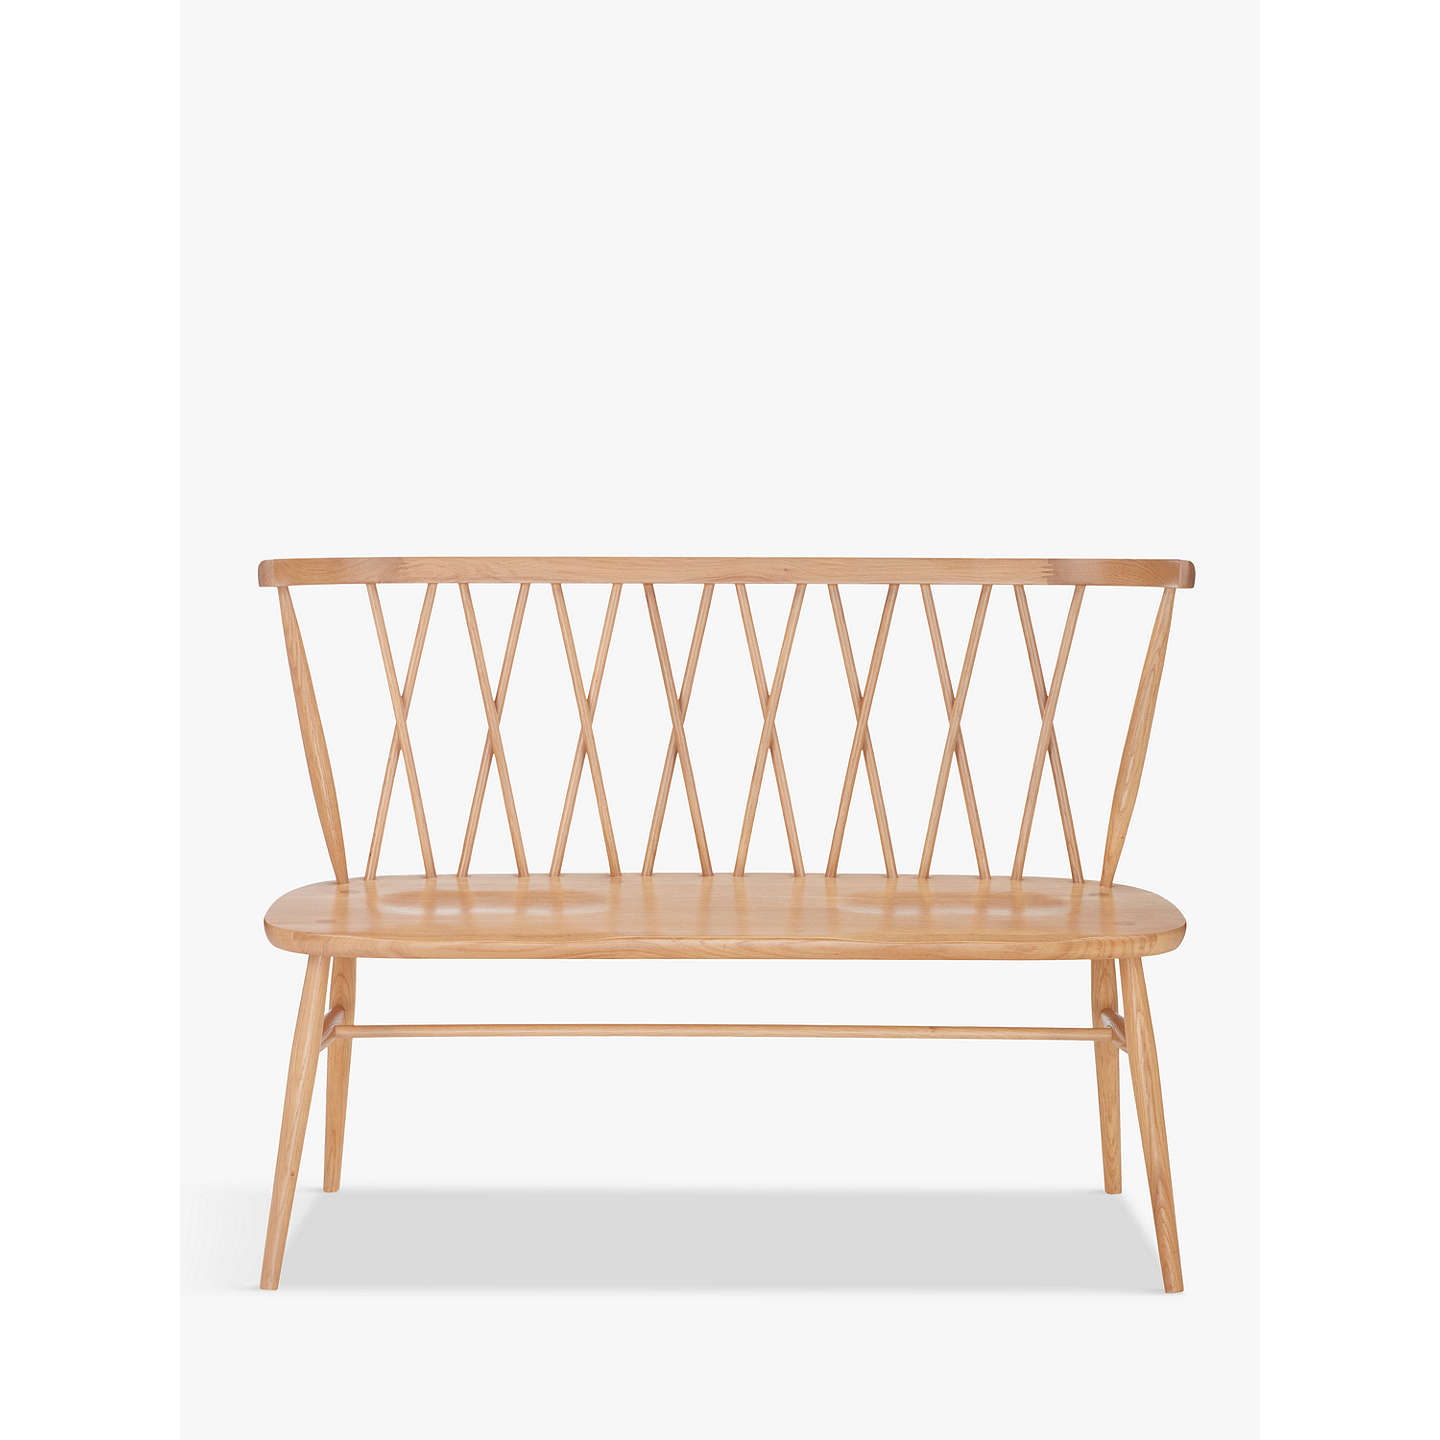 Buyercol For John Lewis Shalstone Dining Bench Online At Johnlewis